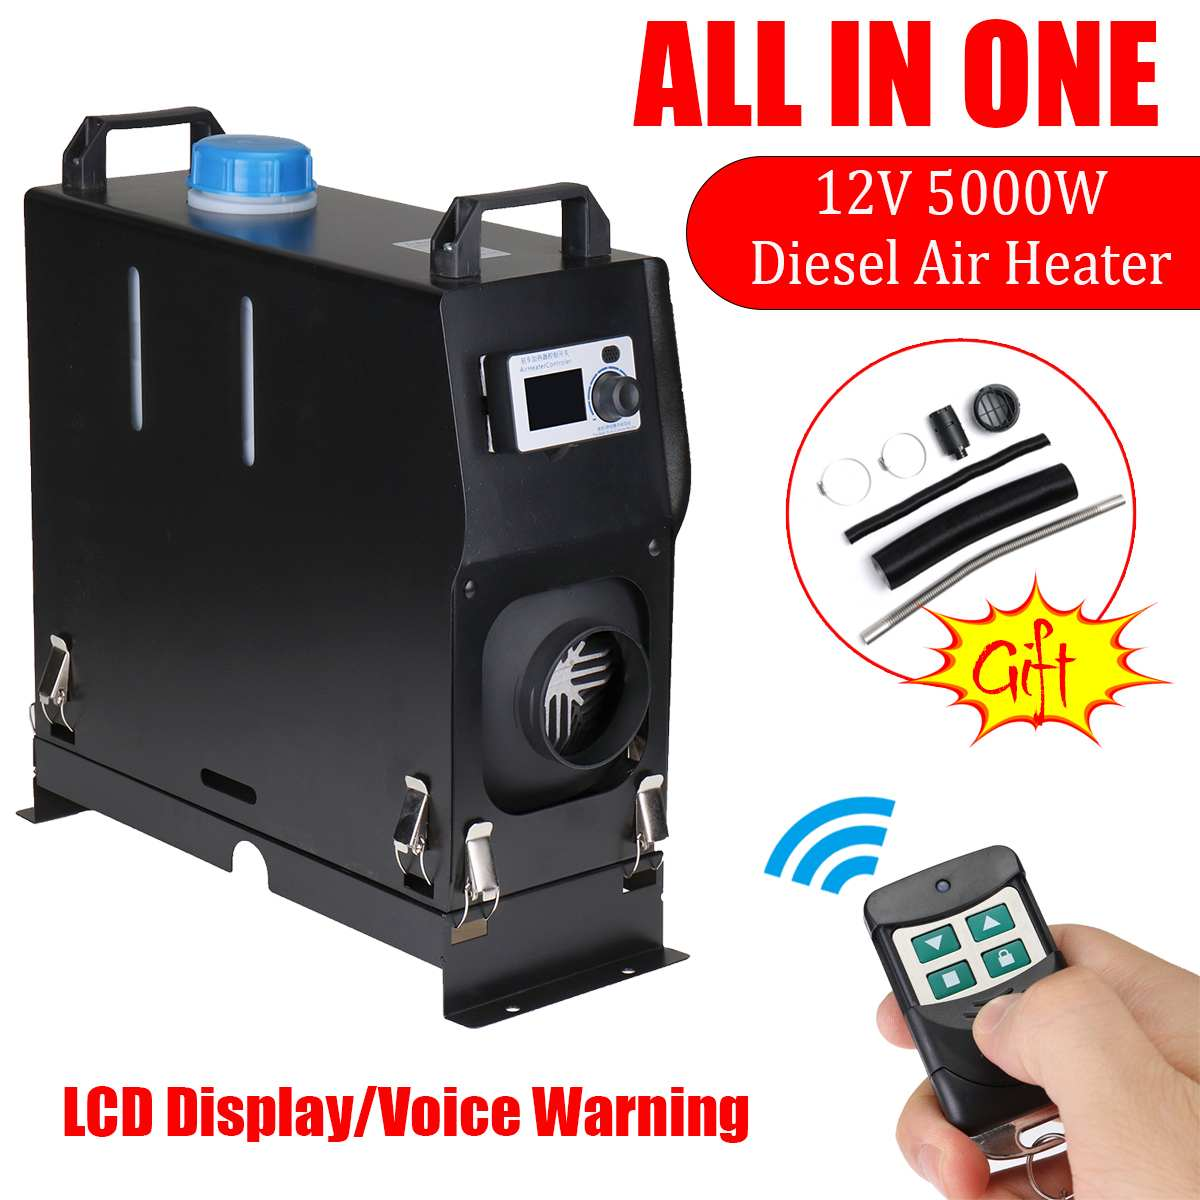 All In One 5000W Air Diesels Parking Heater 5KW 12V Car Heater For Trucks Boats Bus Caravan + LCD Screen Switch +Remote controlAll In One 5000W Air Diesels Parking Heater 5KW 12V Car Heater For Trucks Boats Bus Caravan + LCD Screen Switch +Remote control